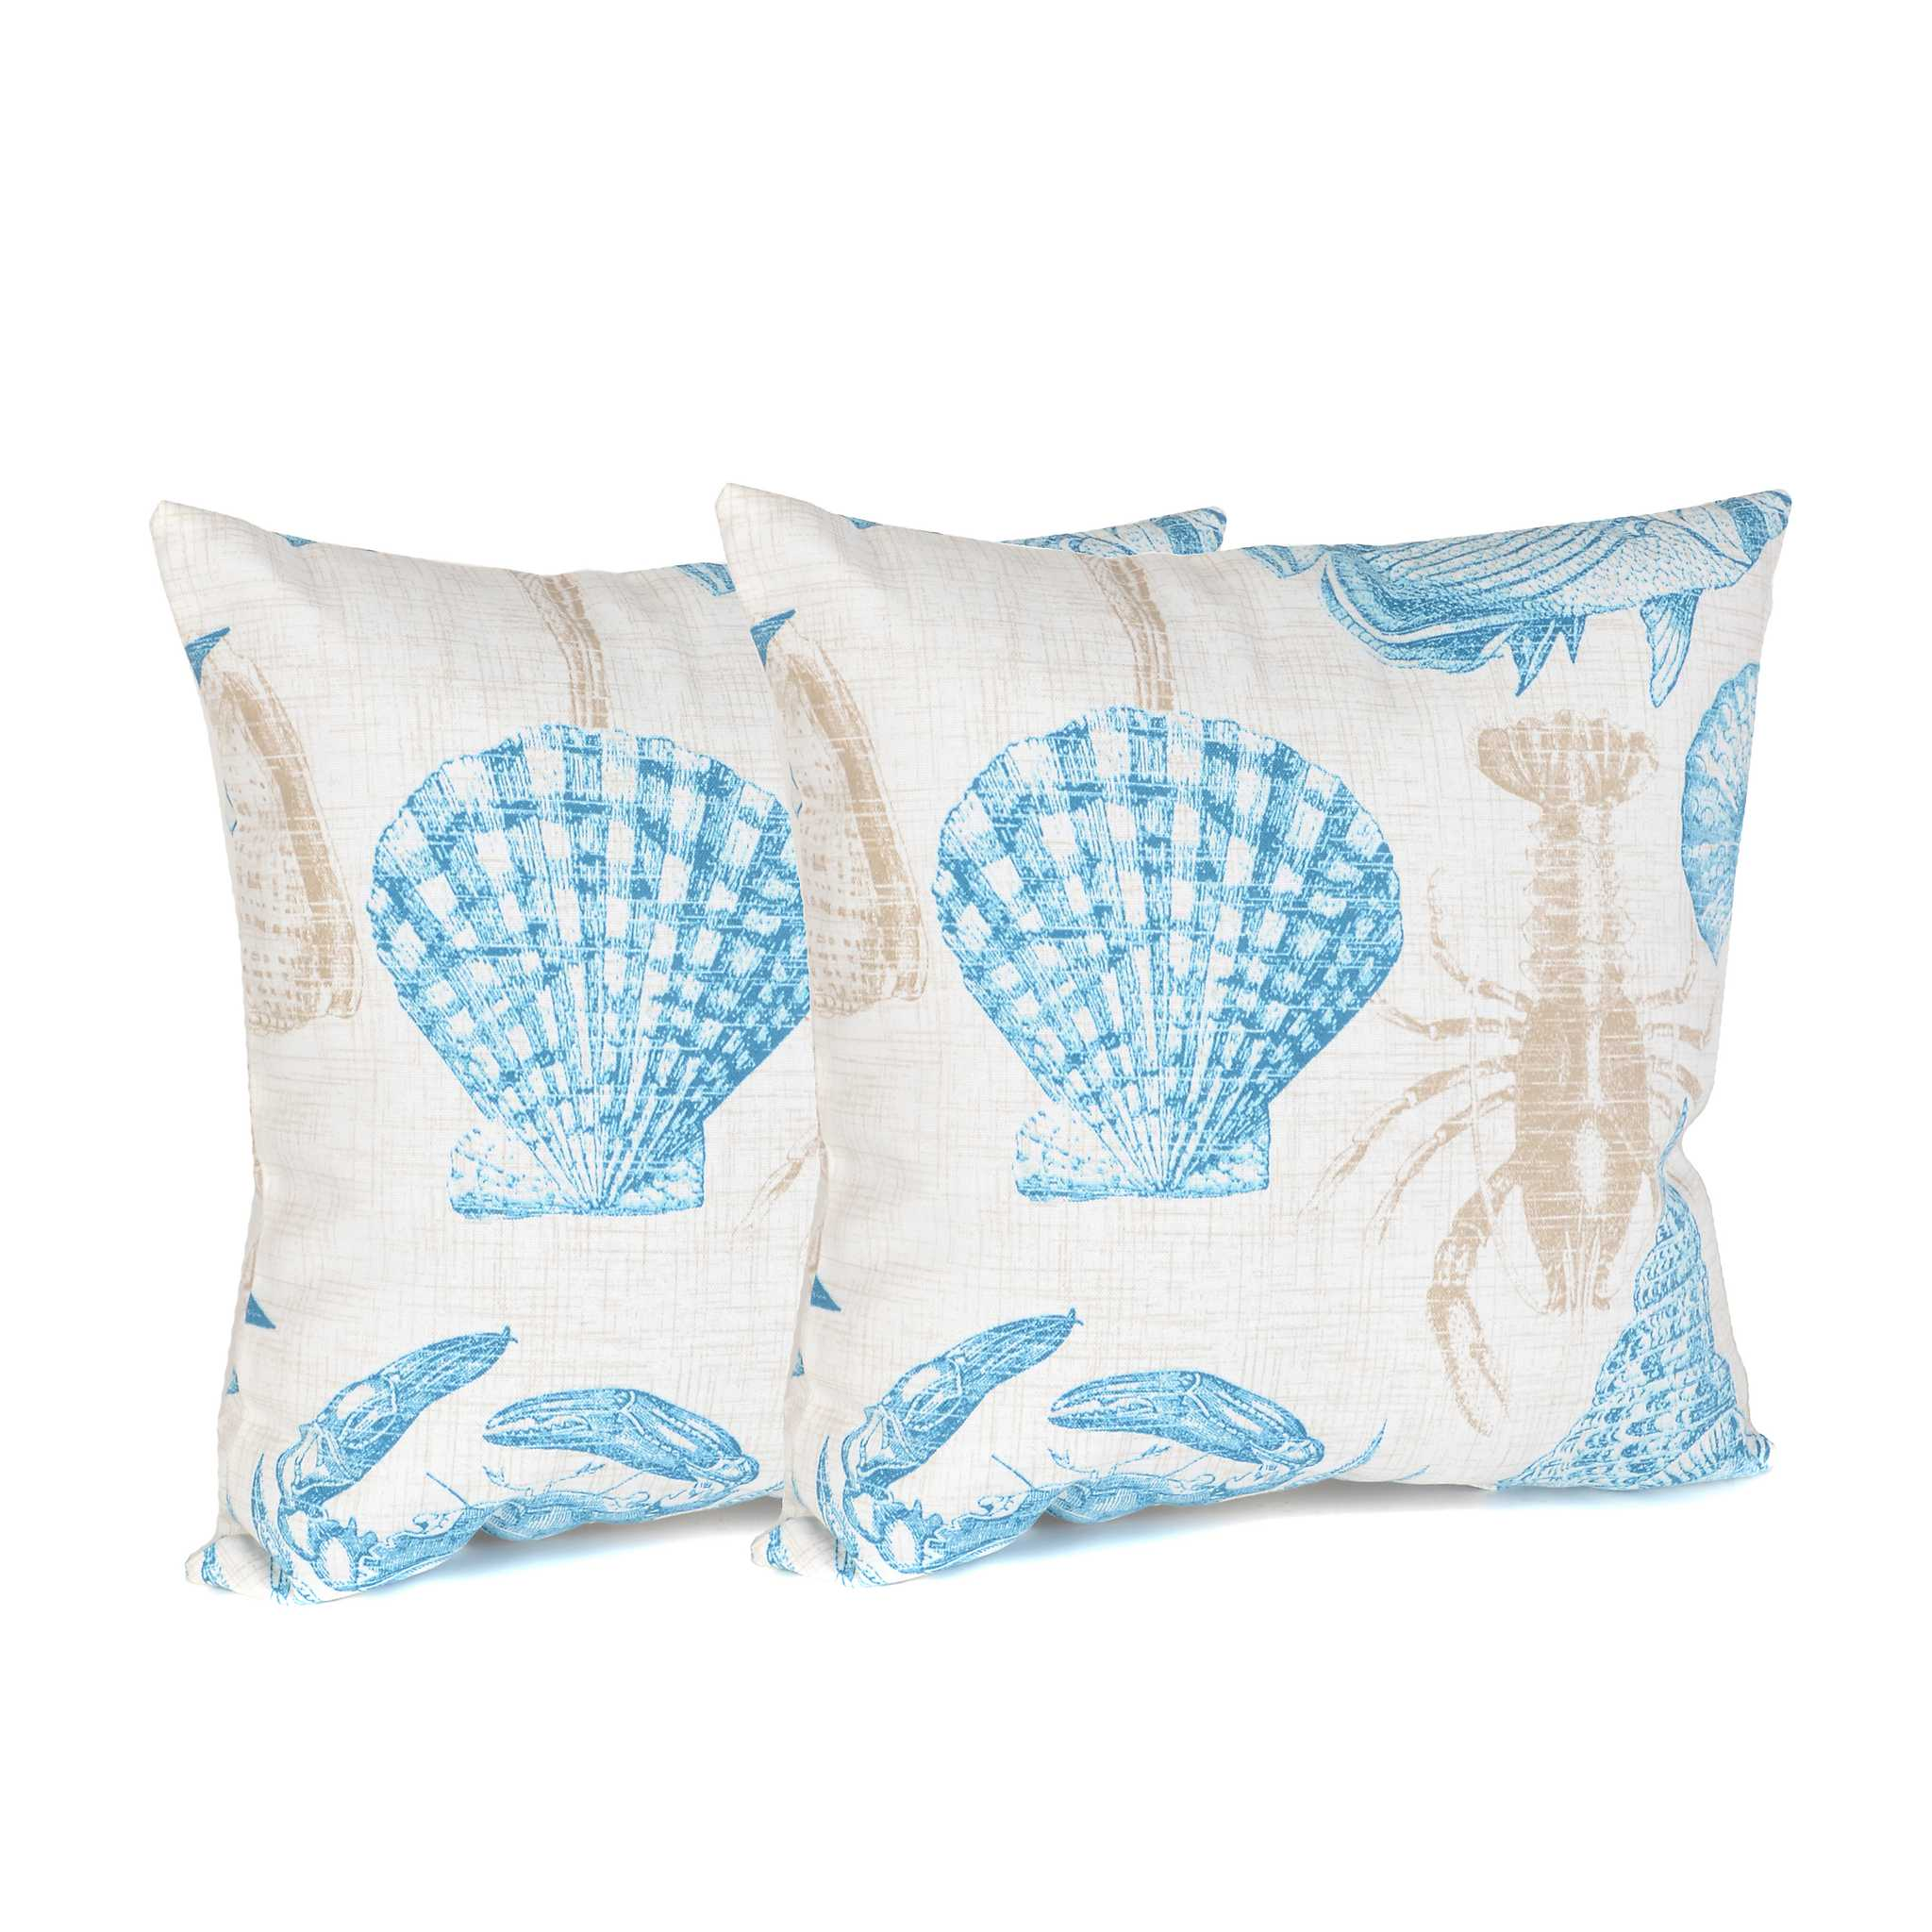 Turquoise Marina Outdoor Accent Pillows, Set of 2 Kirklands